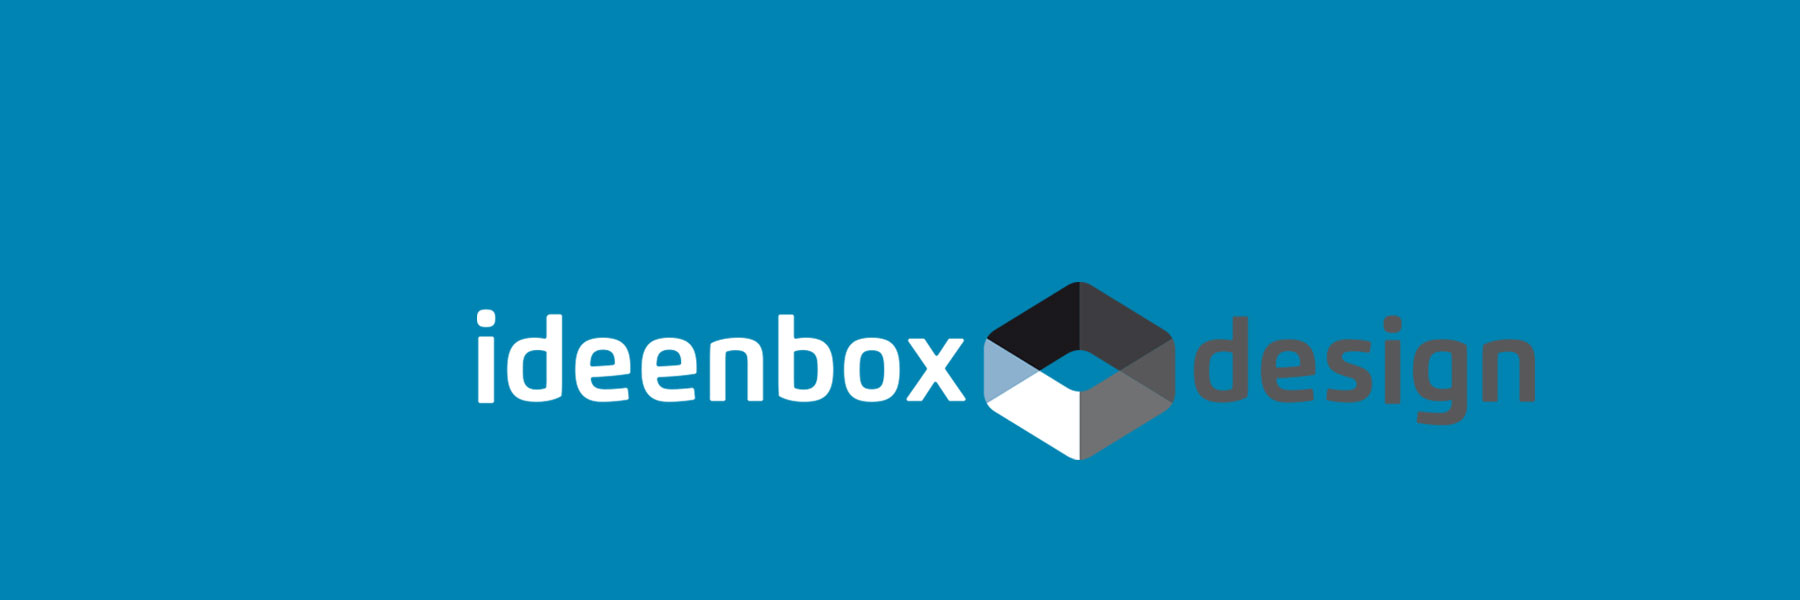 Ideenbox aus Mainz ... Creative Ideen und Marketing Beratung ...